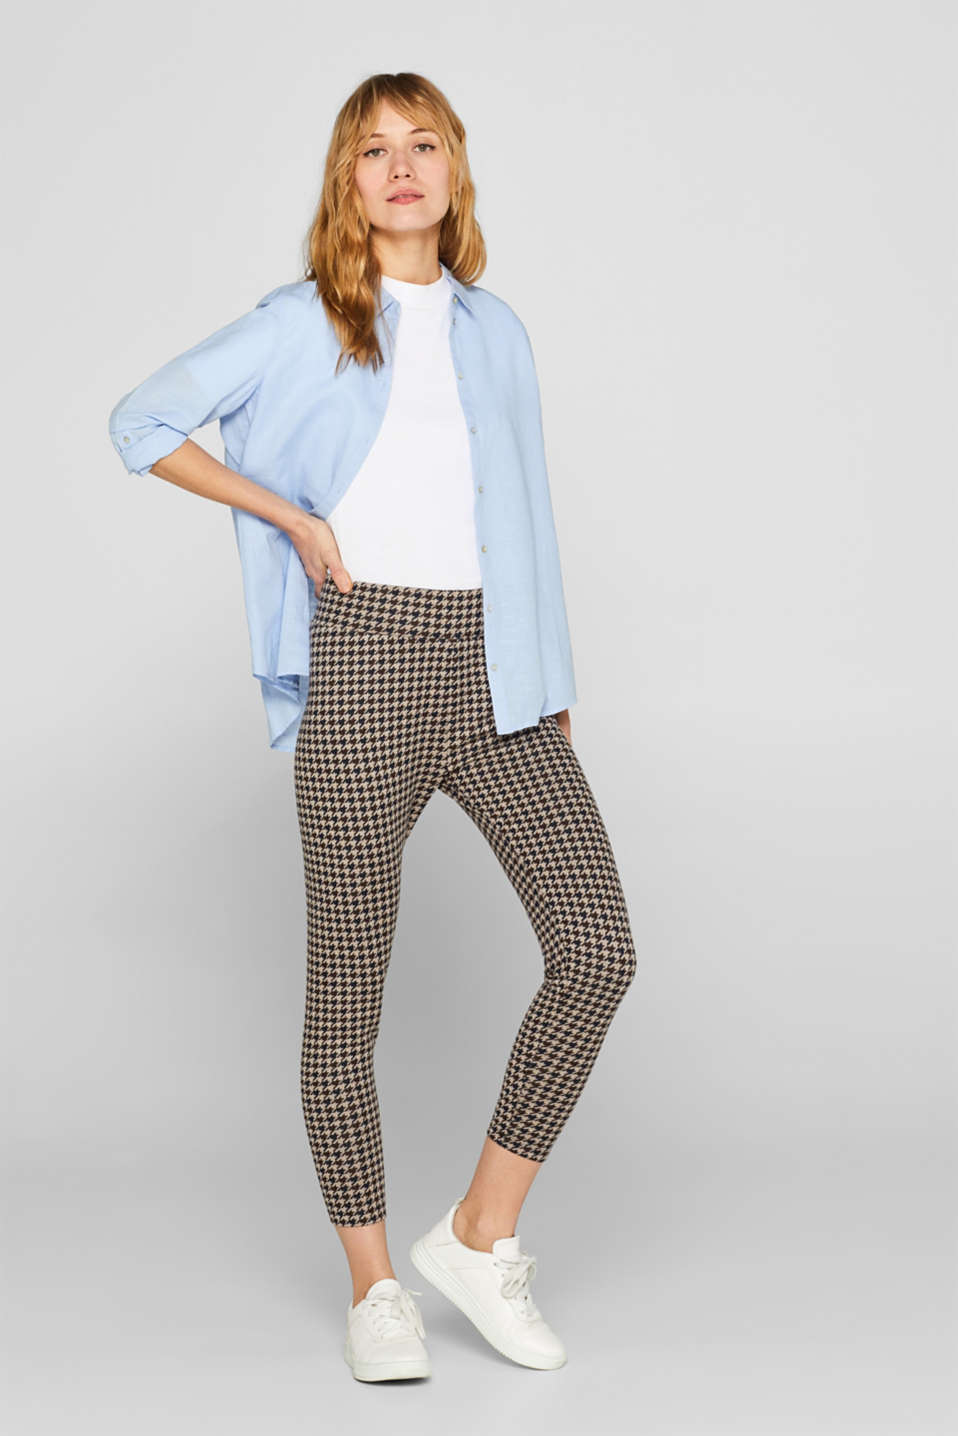 Esprit - Leggings with a houndstooth check pattern